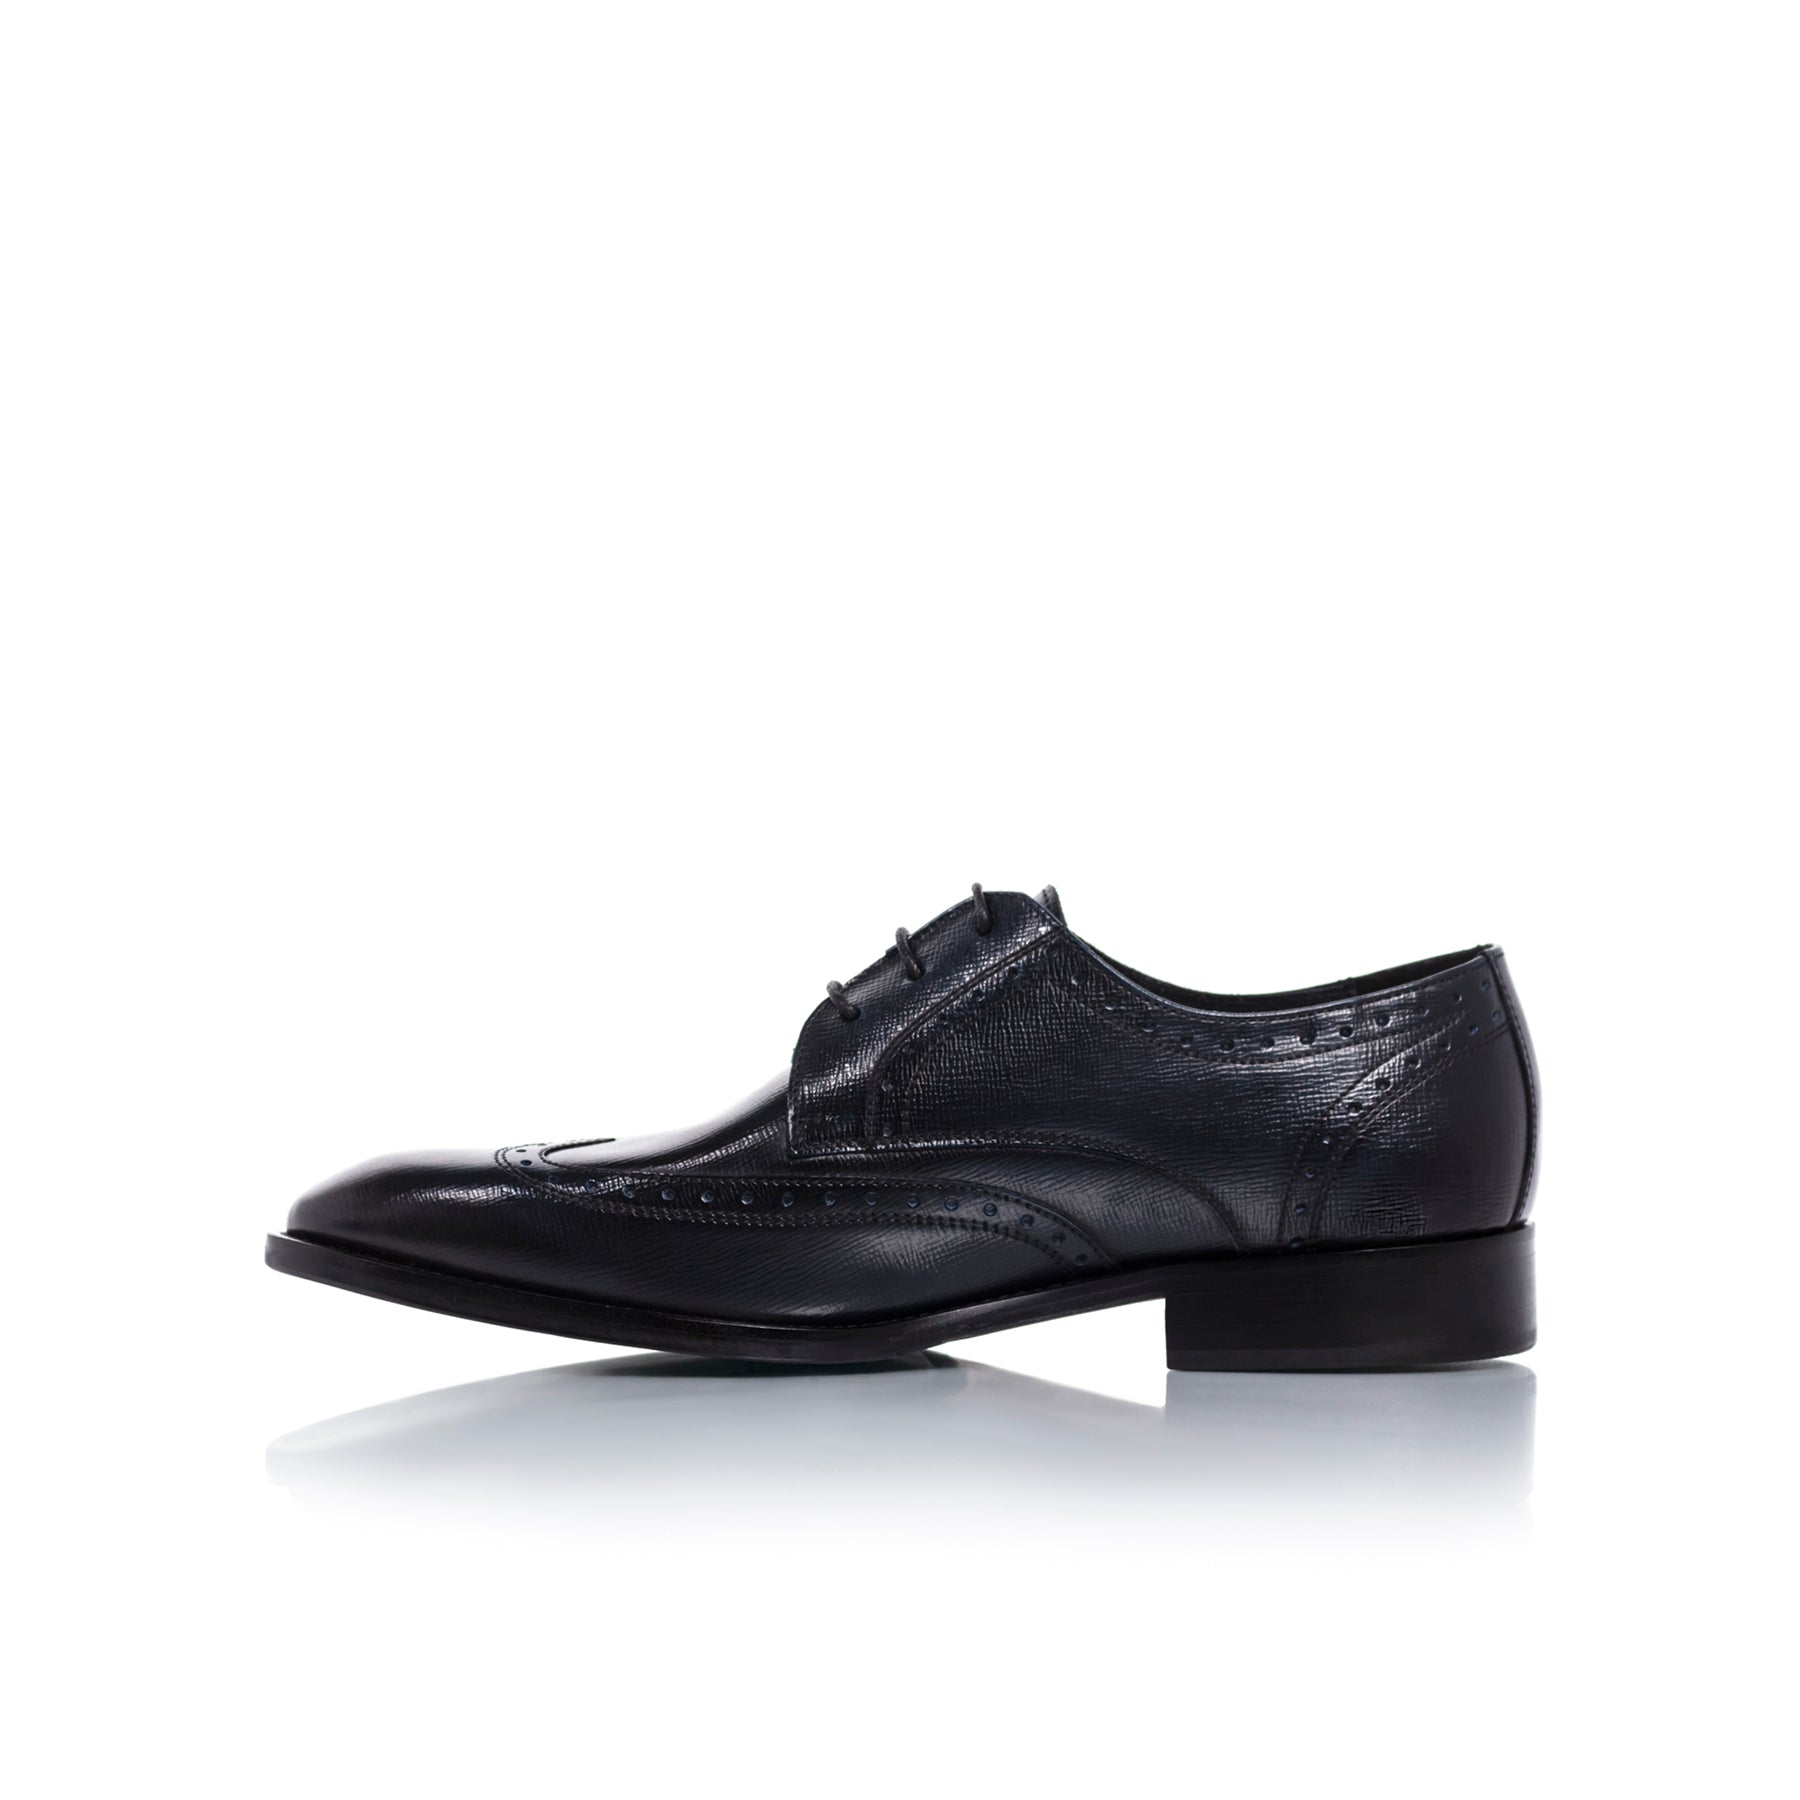 Nicholas Navy Leather Shoes